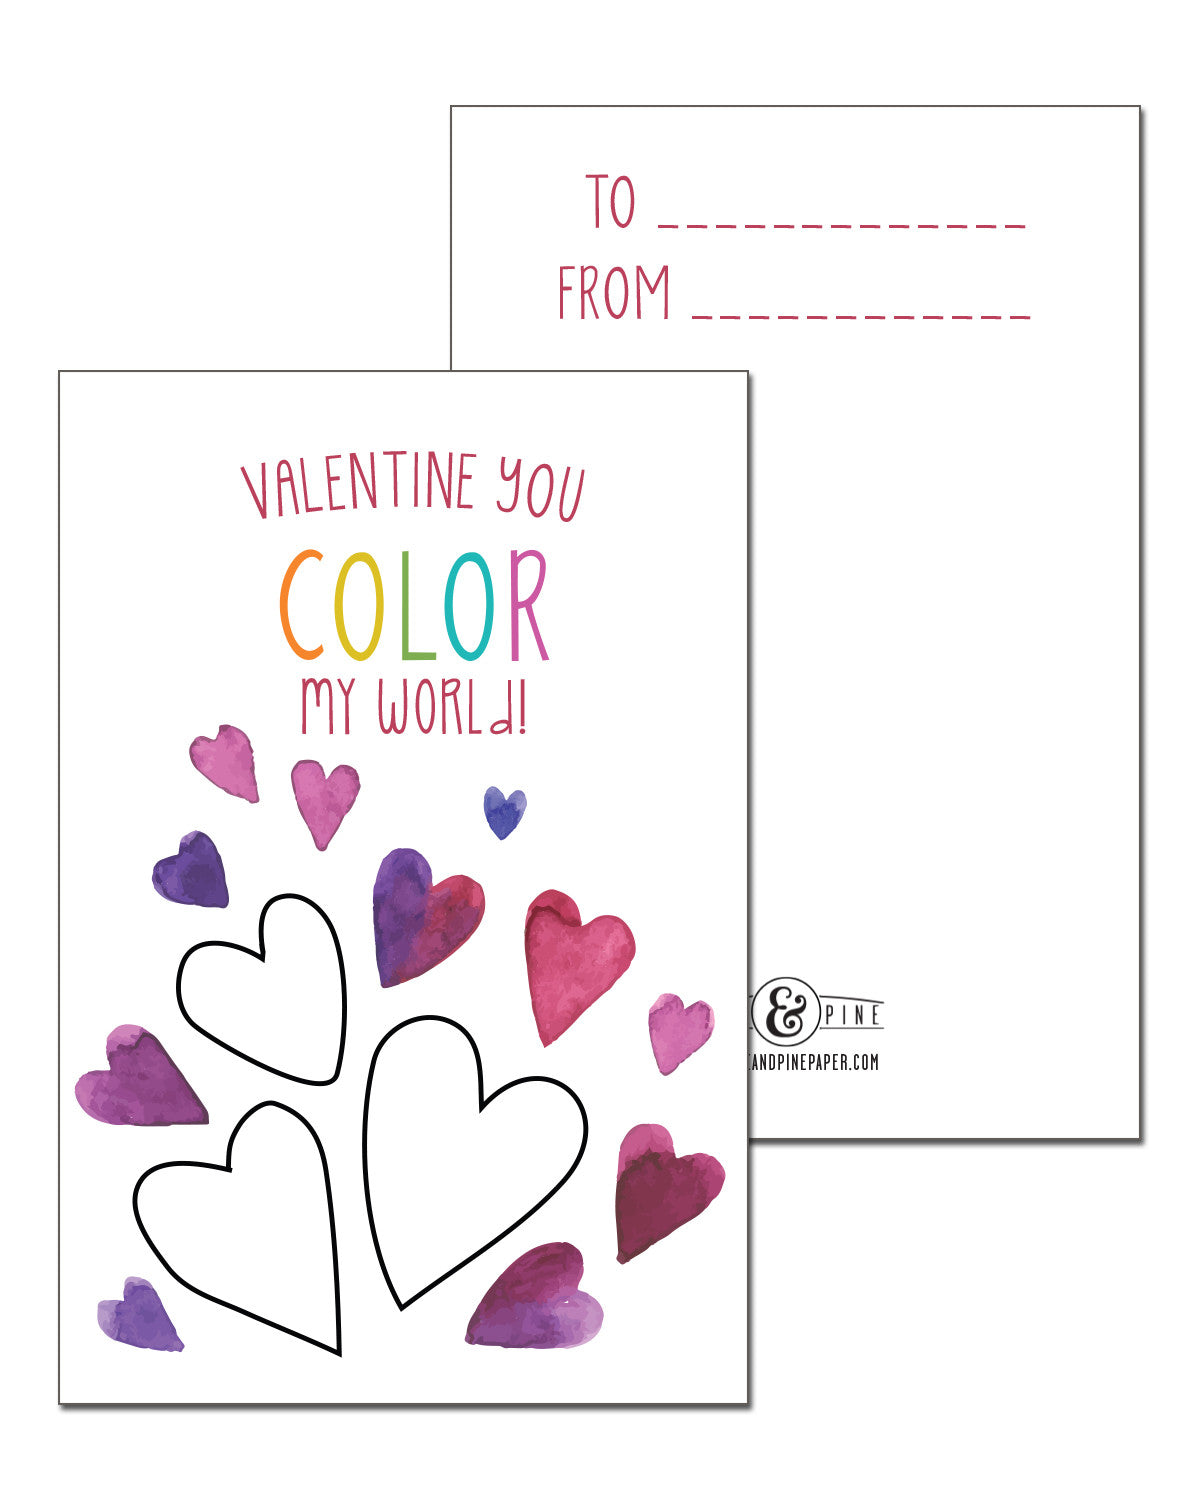 Color My World Valentines Cards Set of 15 Pike and Pine Paper – Valentines Cards to Color